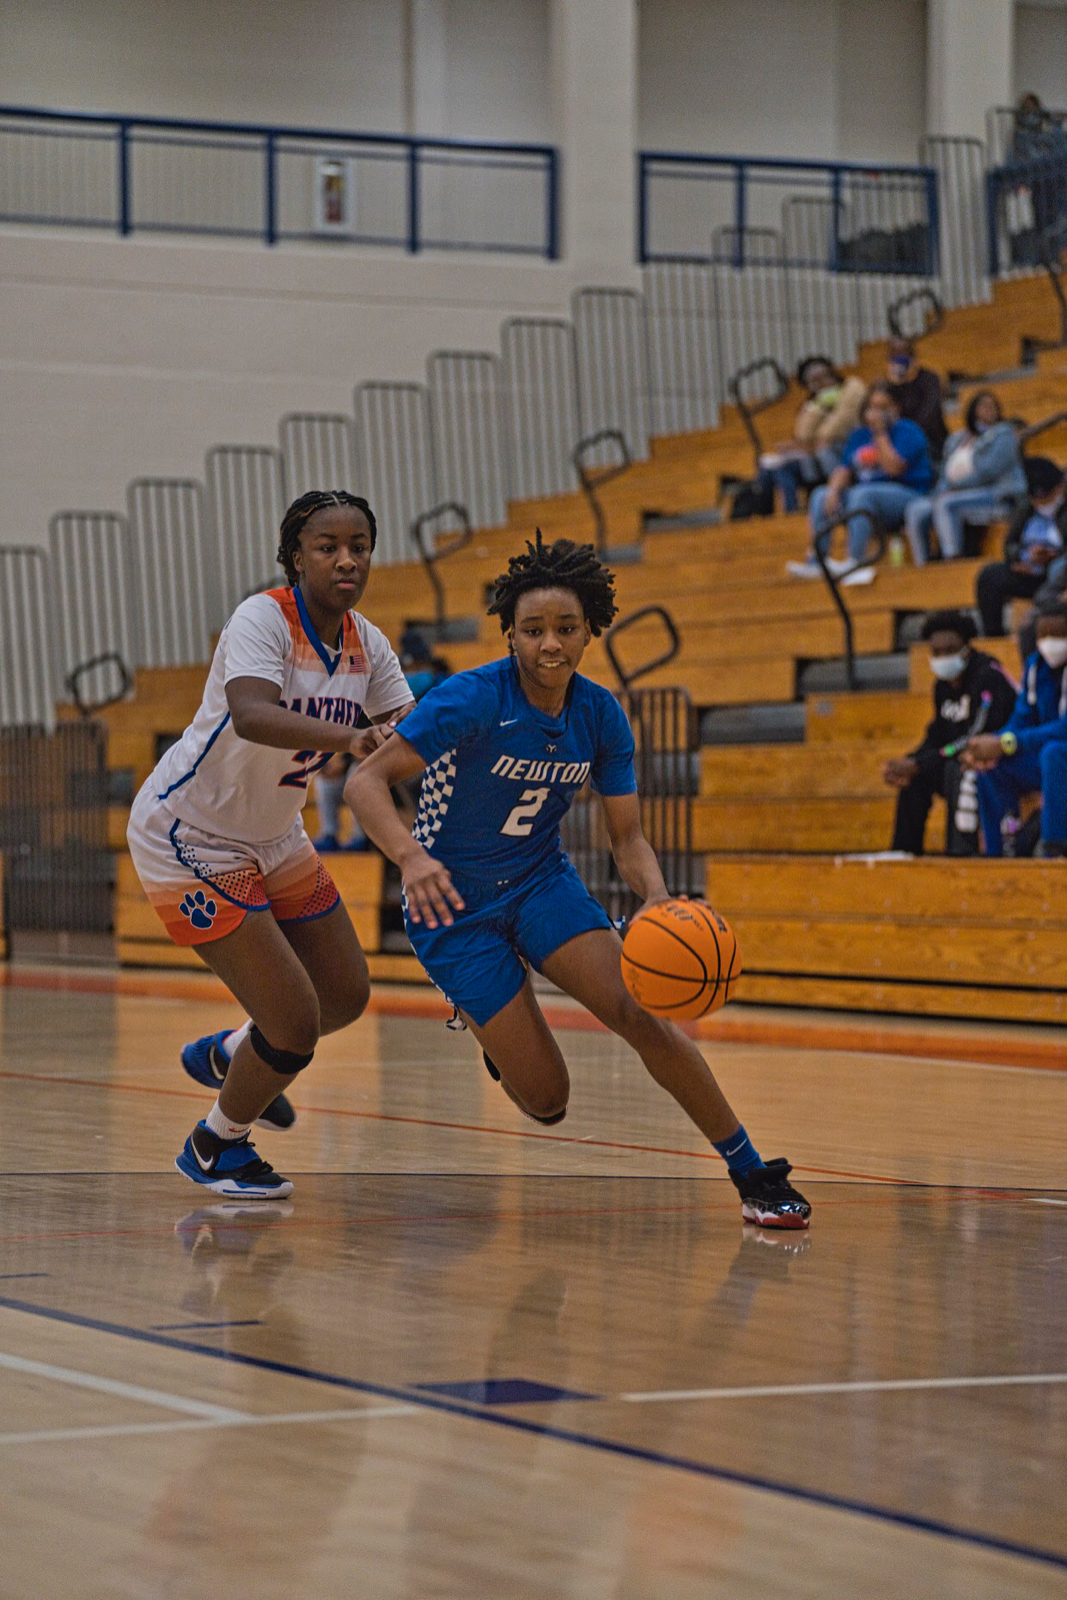 Varsity Girls Basketball v. Parkview Photos